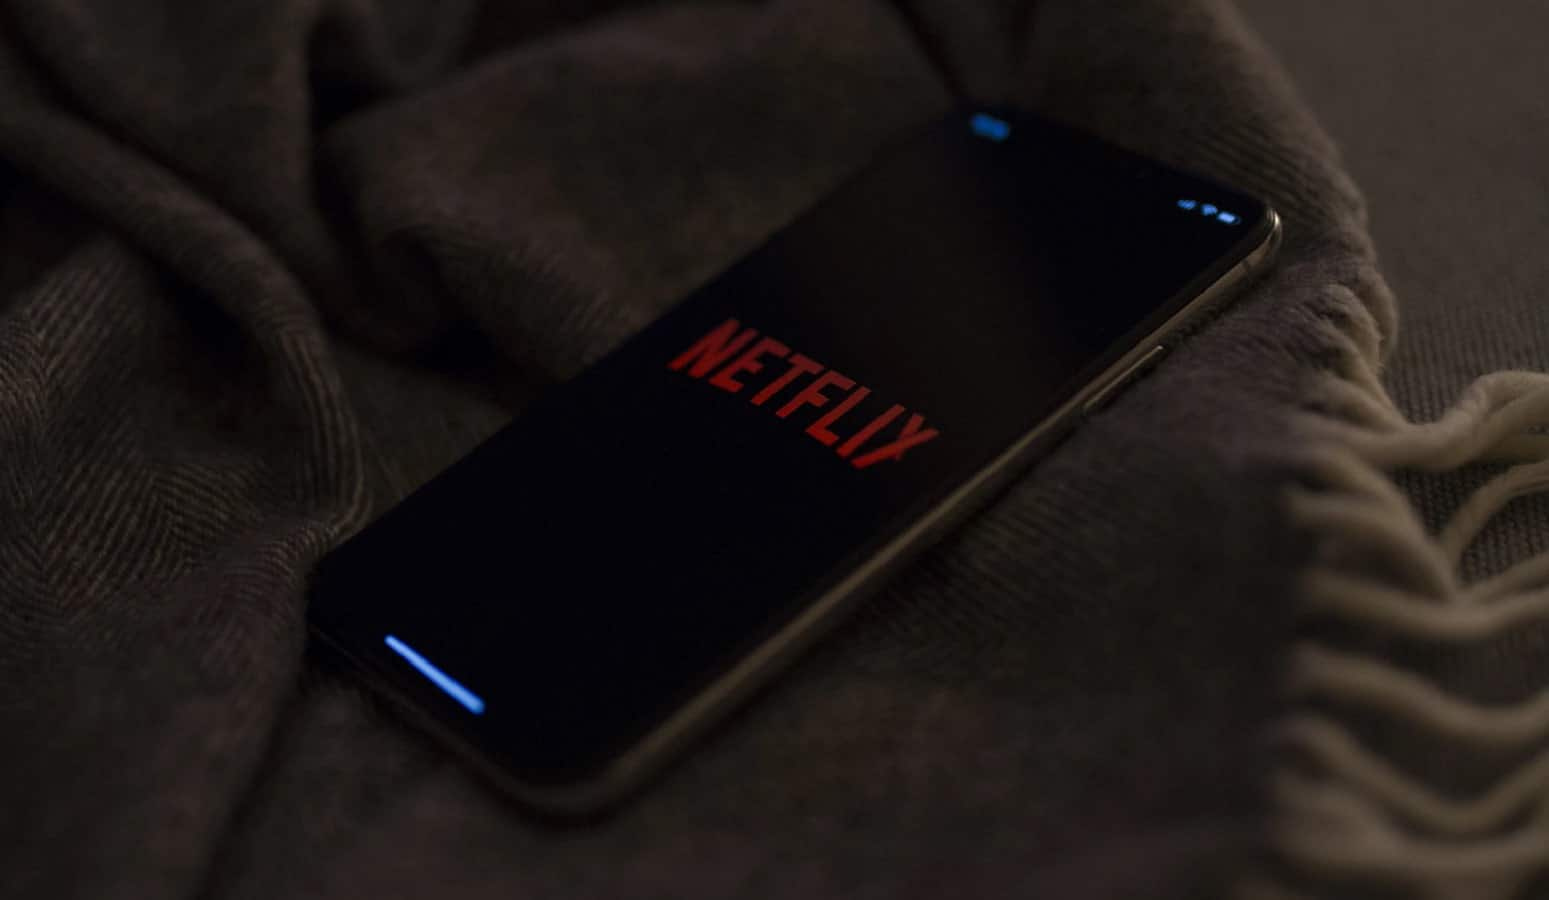 netflix on phone on bed